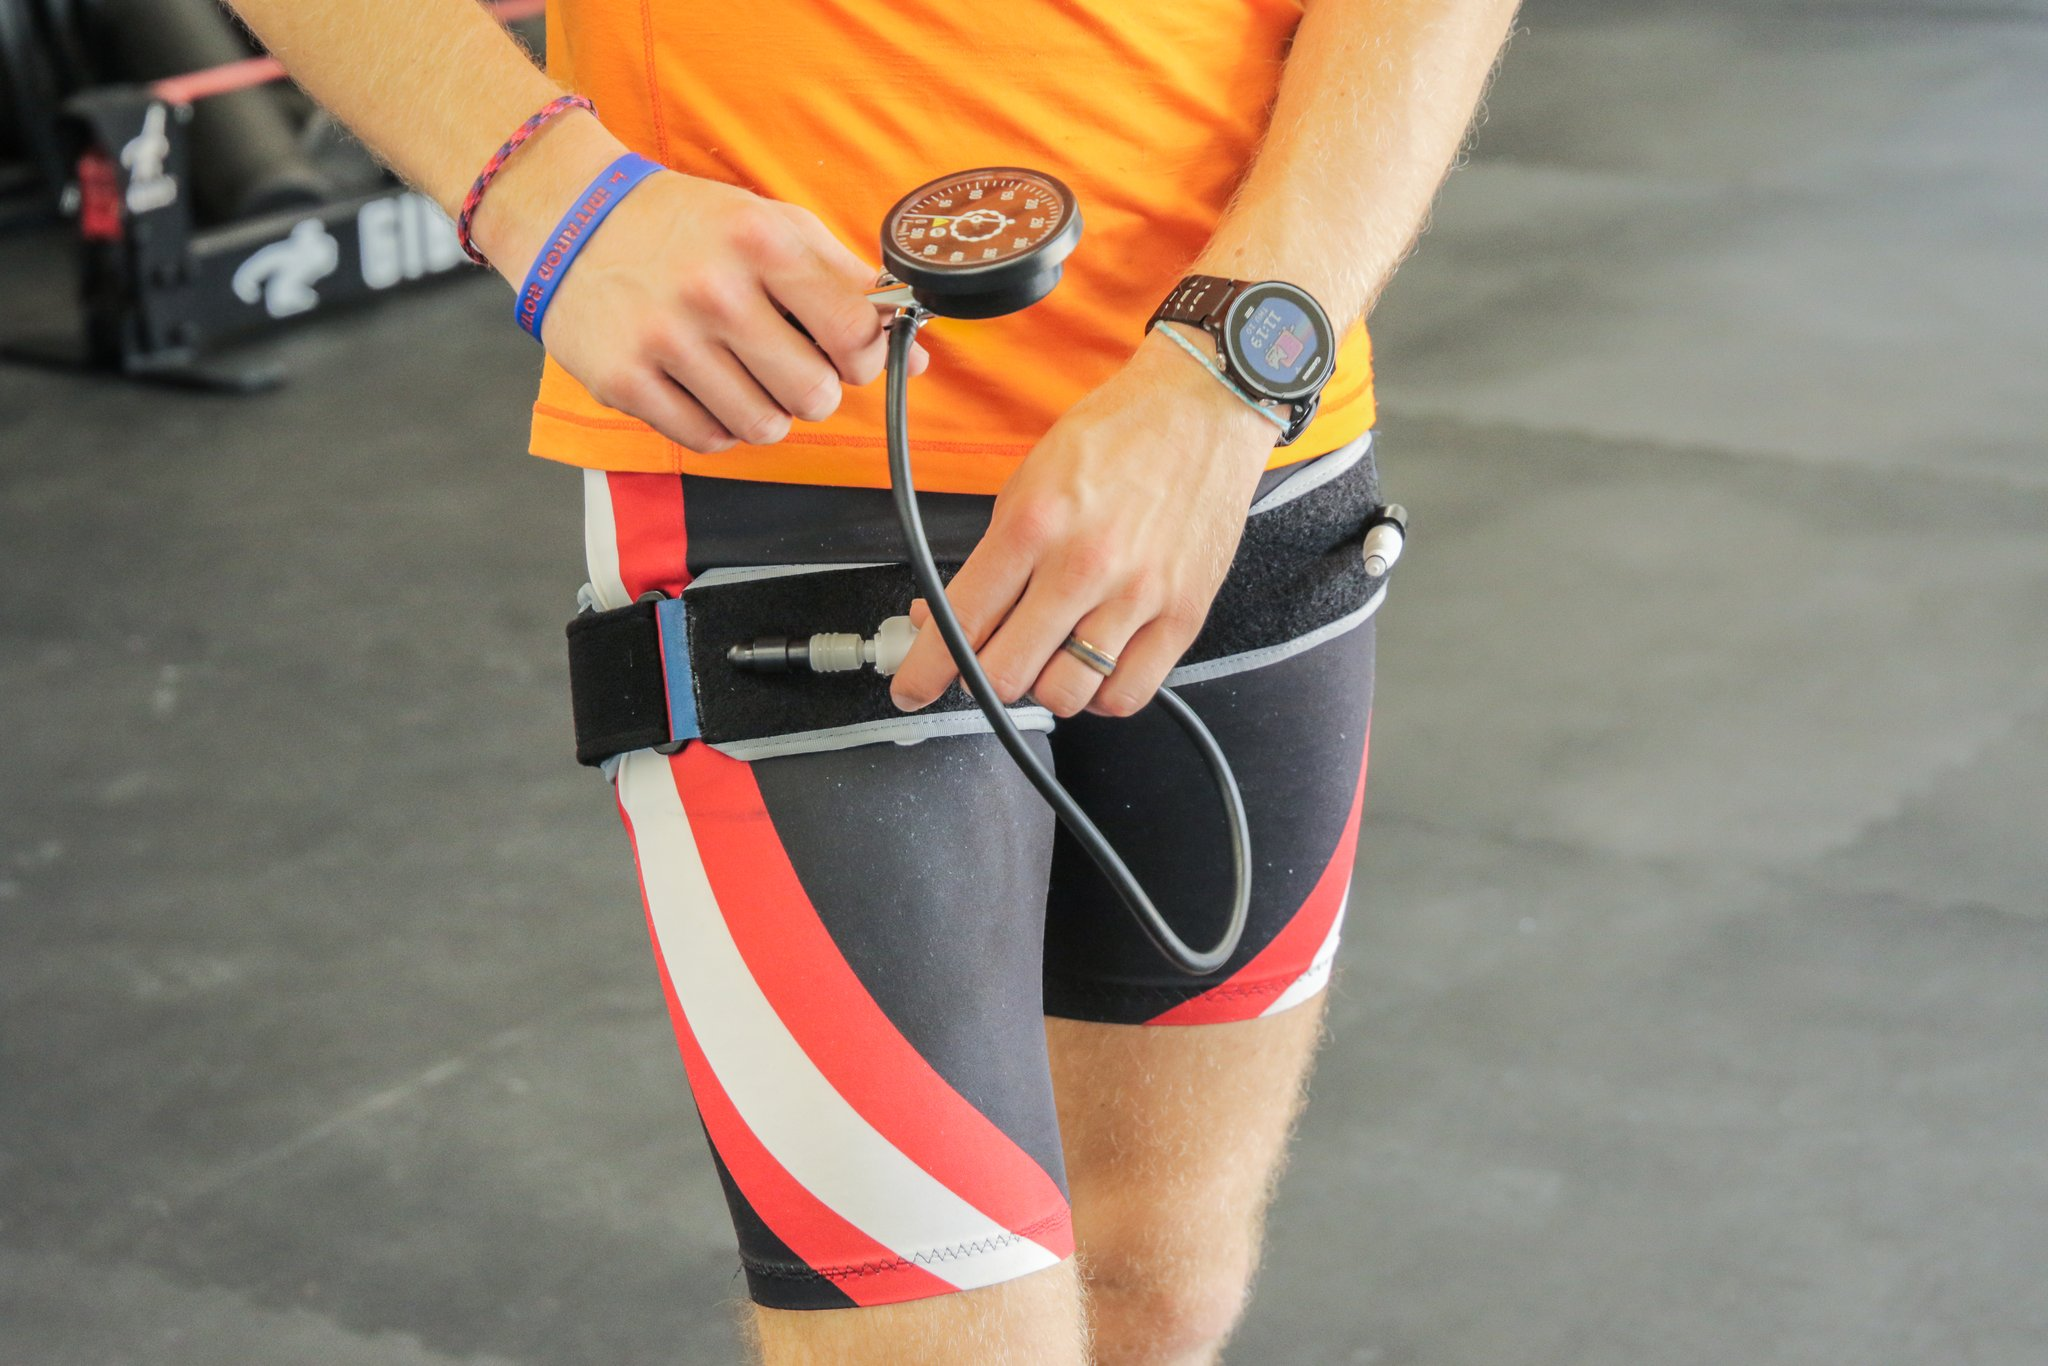 blood flow restriction